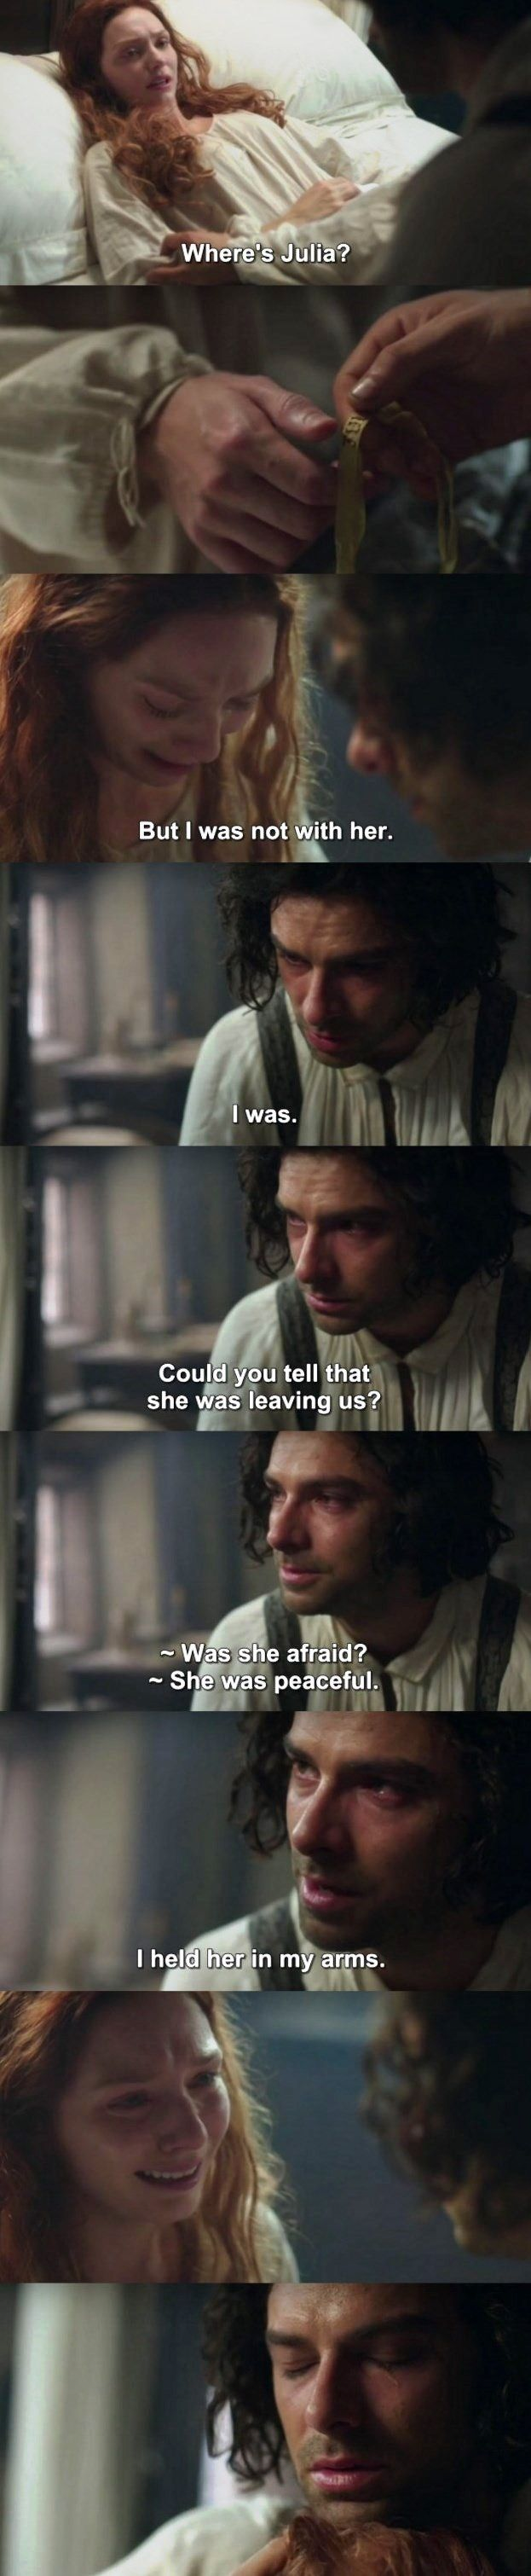 Most heartbreakingly raw and beautiful scene in Poldark. Ross and Demelza's love for each other is so strong, even in their harrowing pain. Aidan Turner and Eleanor Tomlinson deserve major awards for this moment.